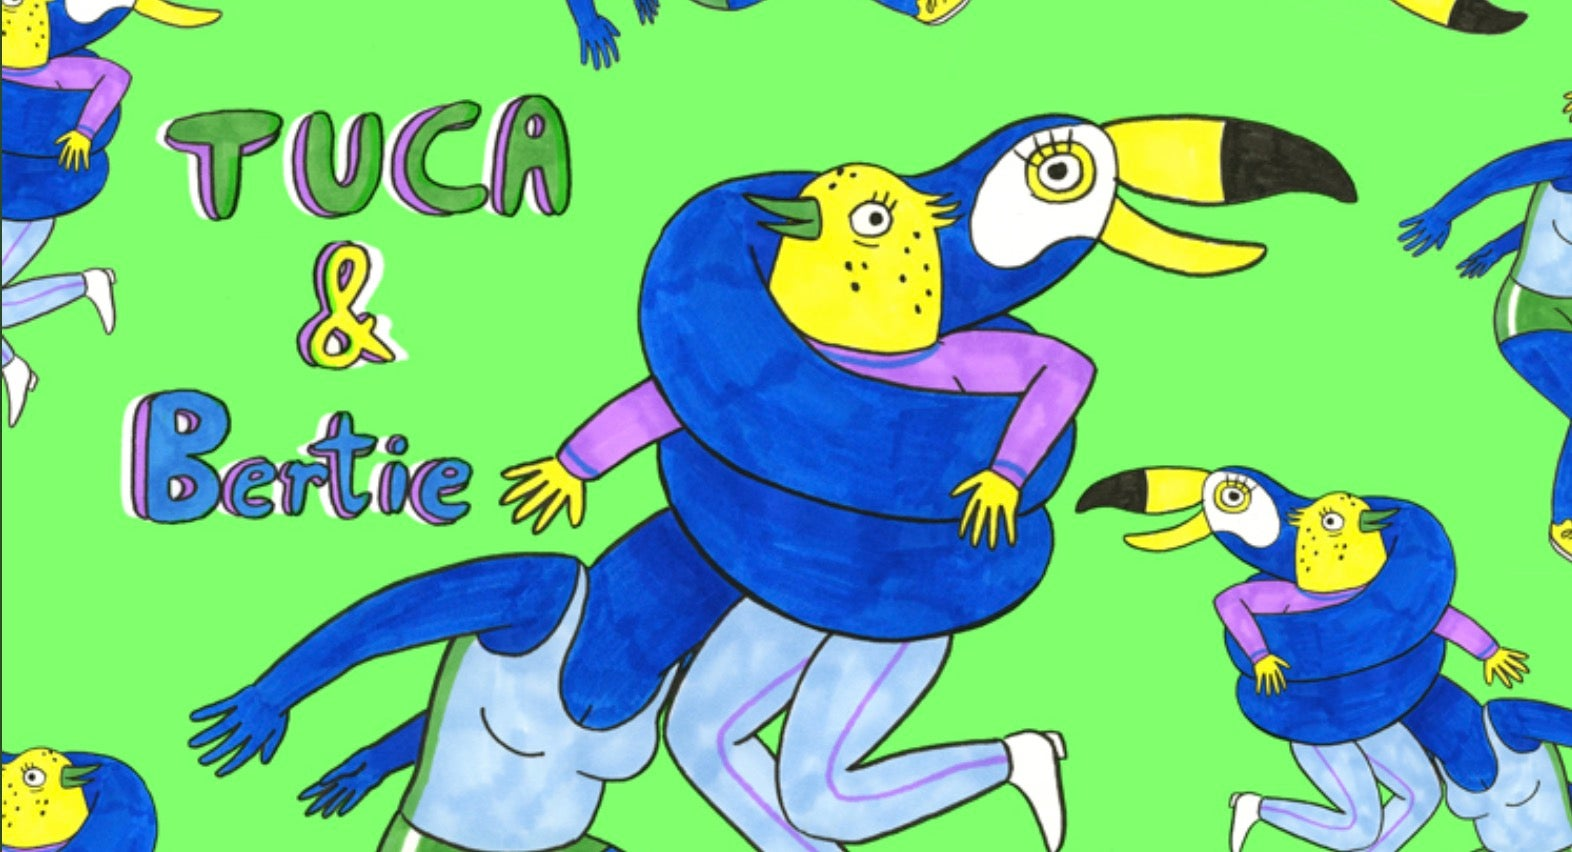 Cacaw! Tuca And Bertie Is Getting A New Lease On Life At Adult Swim